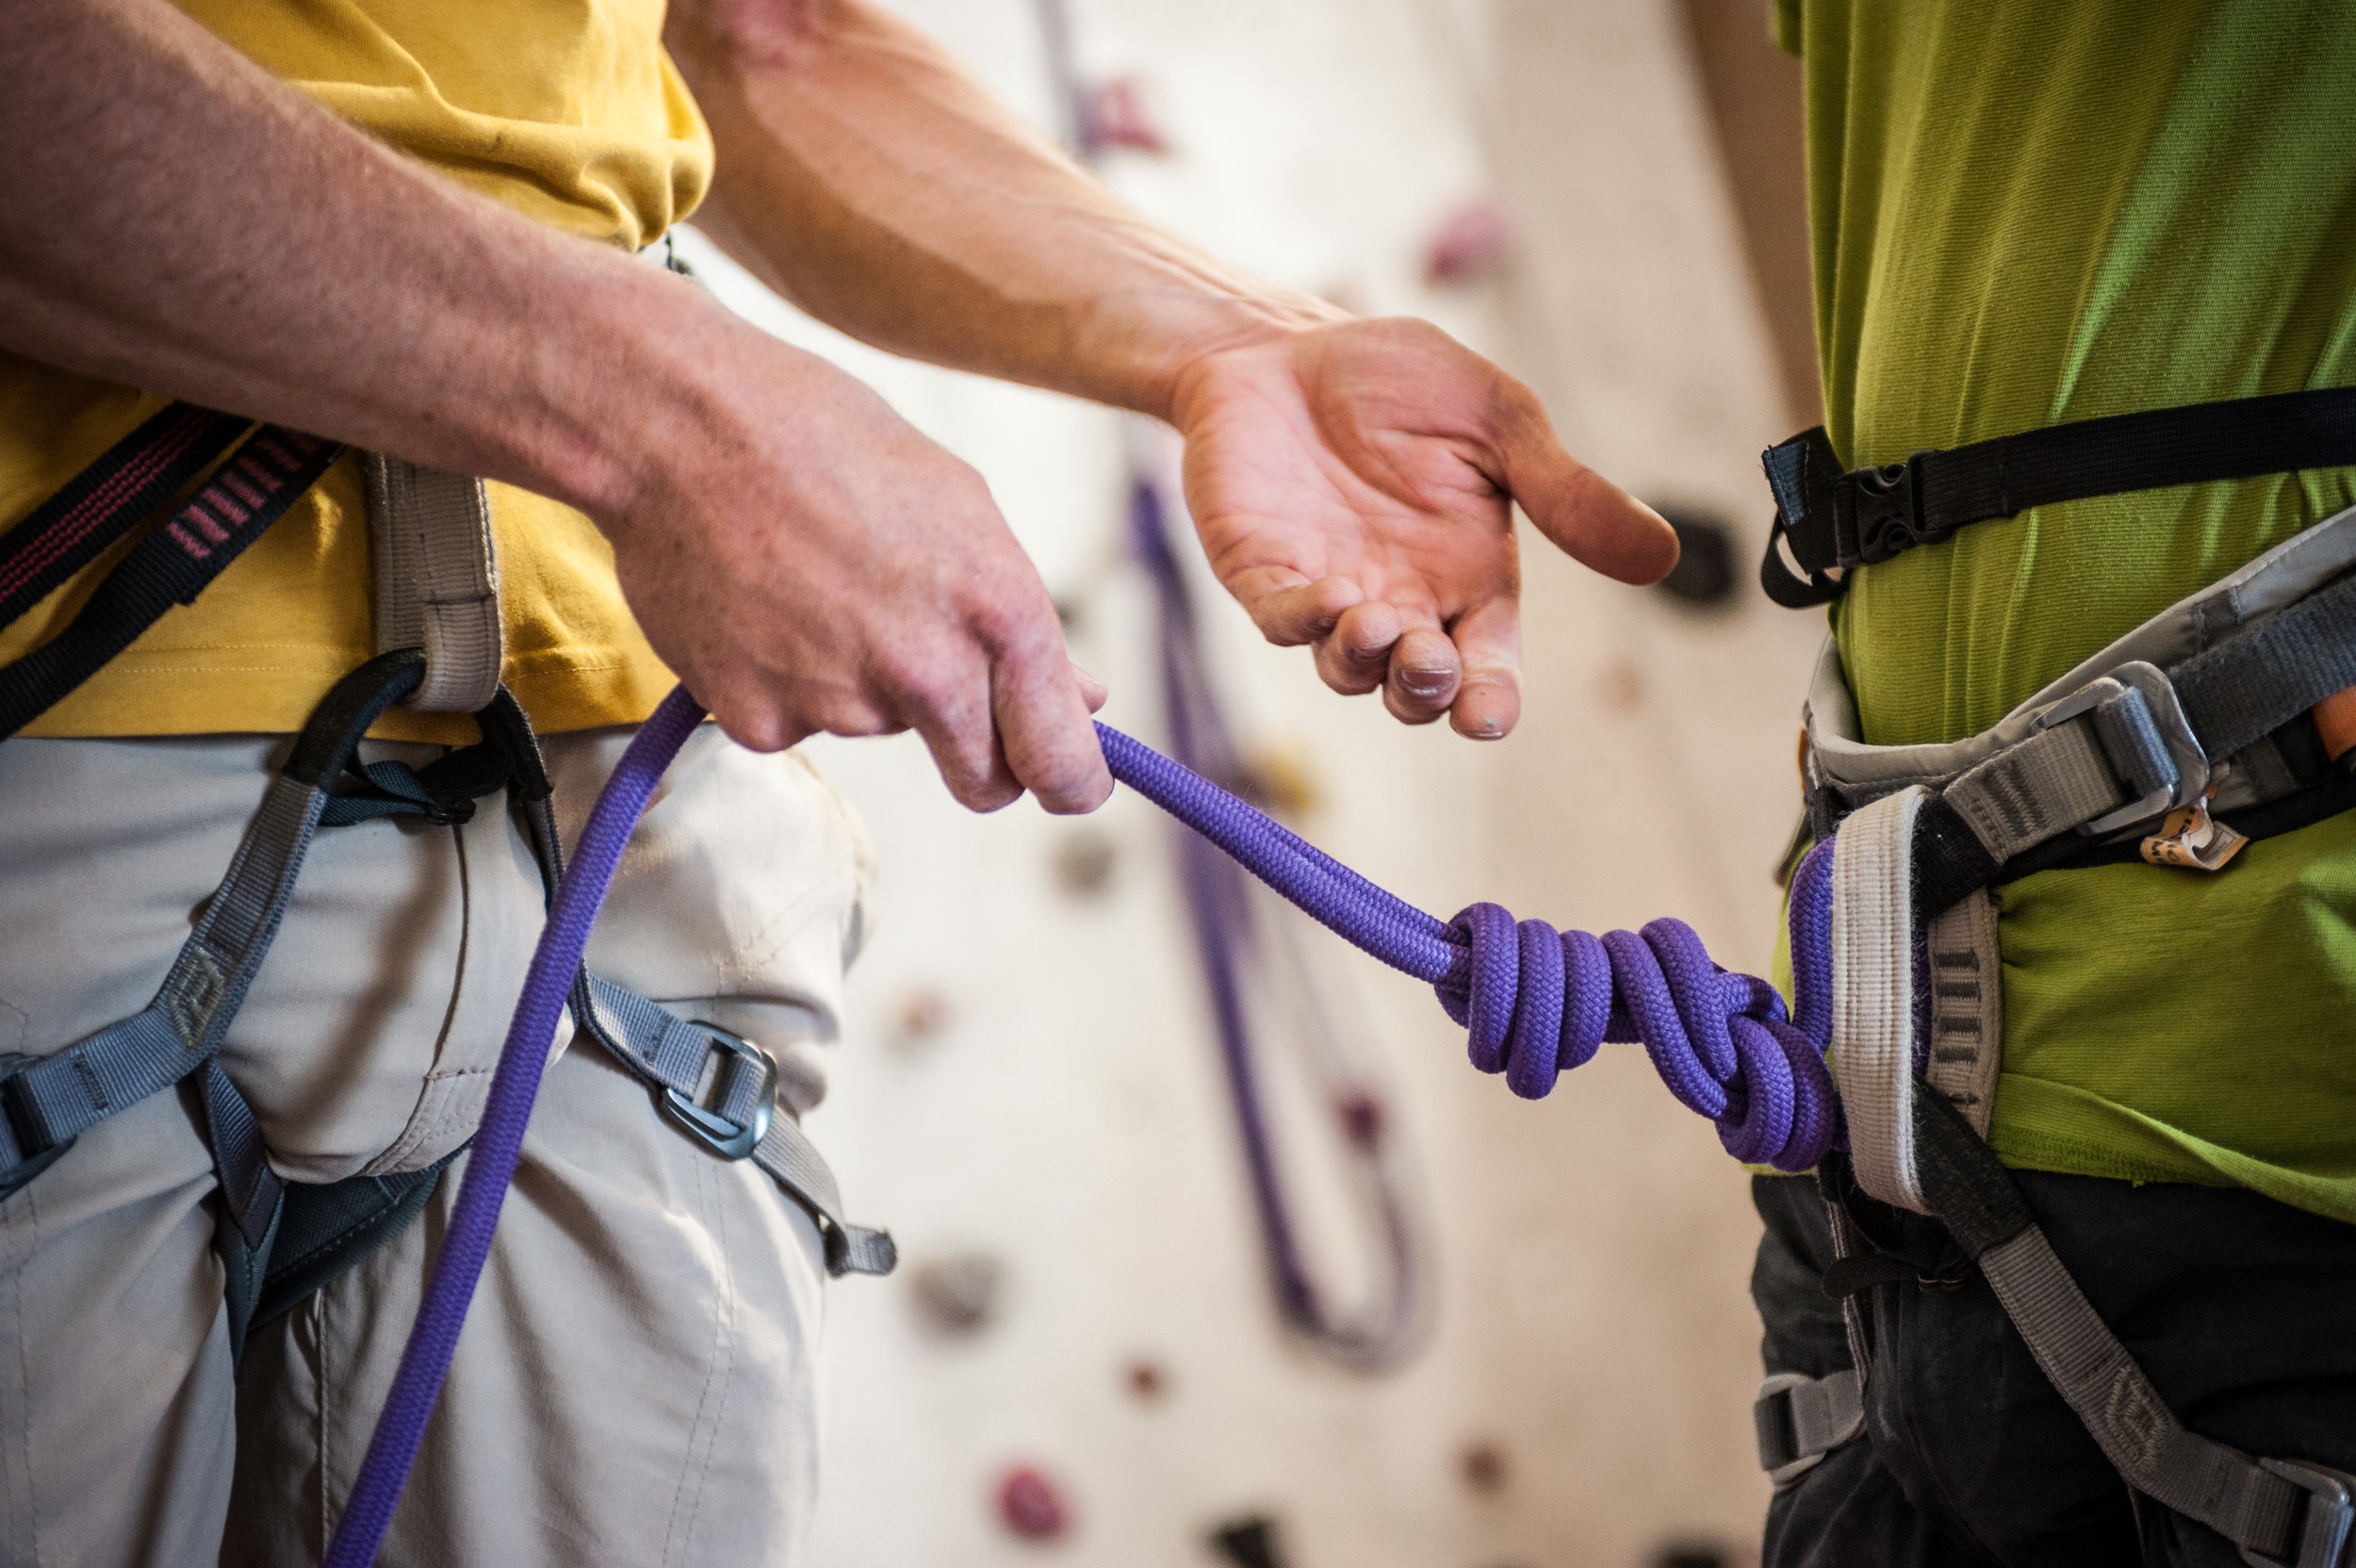 Beginners Course - This course is designed for people who are new to the sport and want to learn the skills required to safely use the top rope and Bouldering areas of the wall.